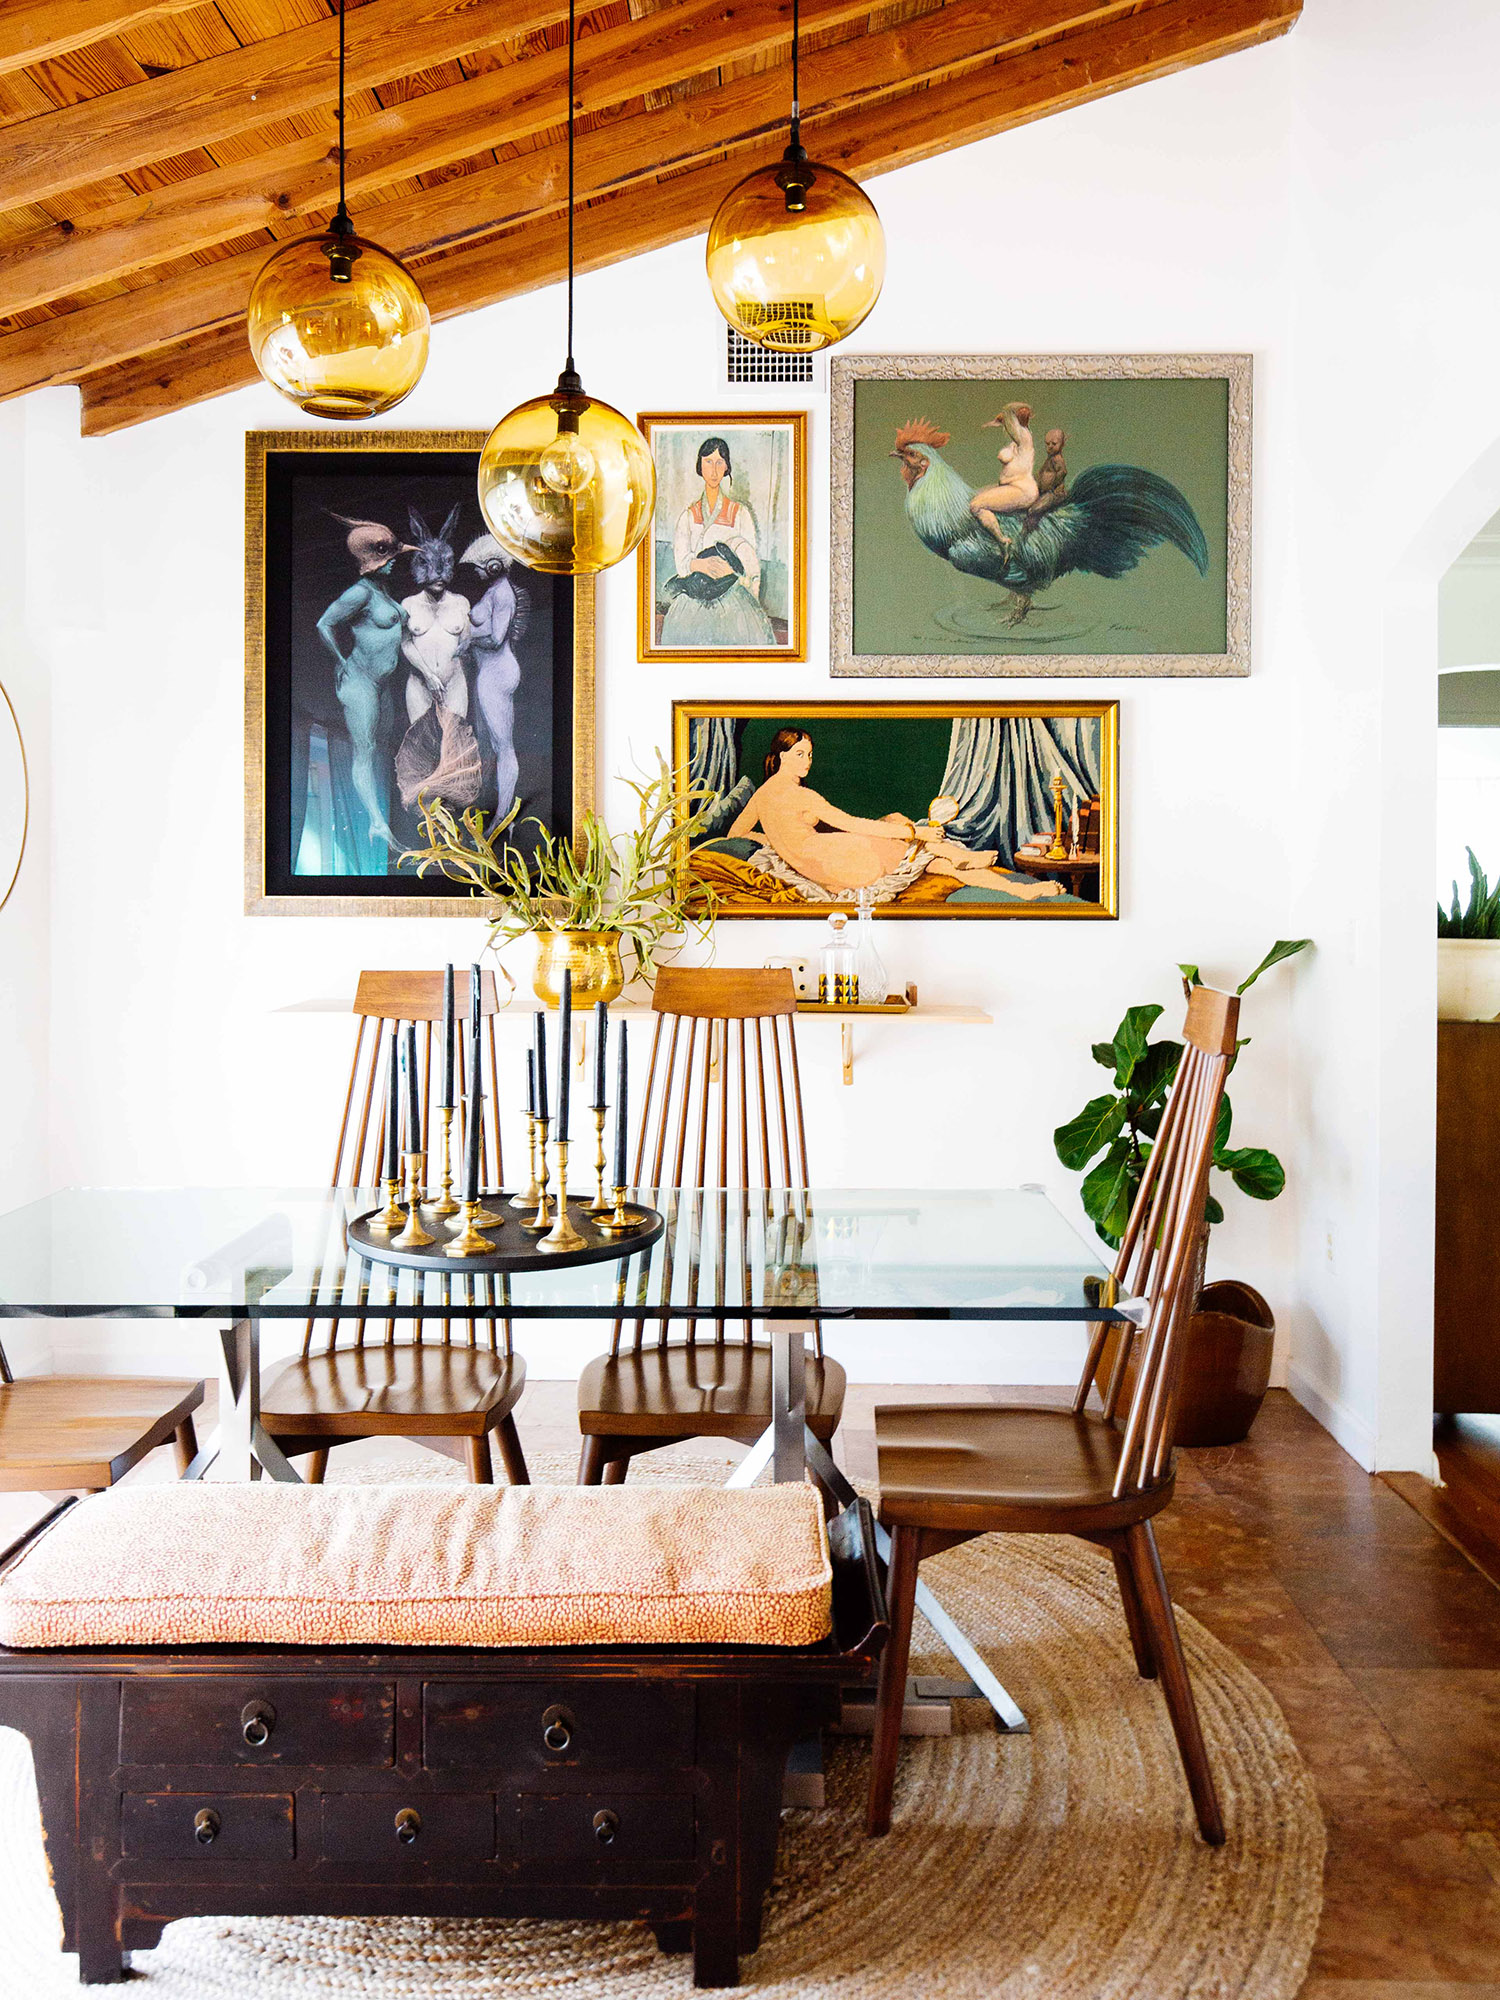 Here Are 8 Tips and Tricks to Find the Best Vintage Midcentury Modern Furniture